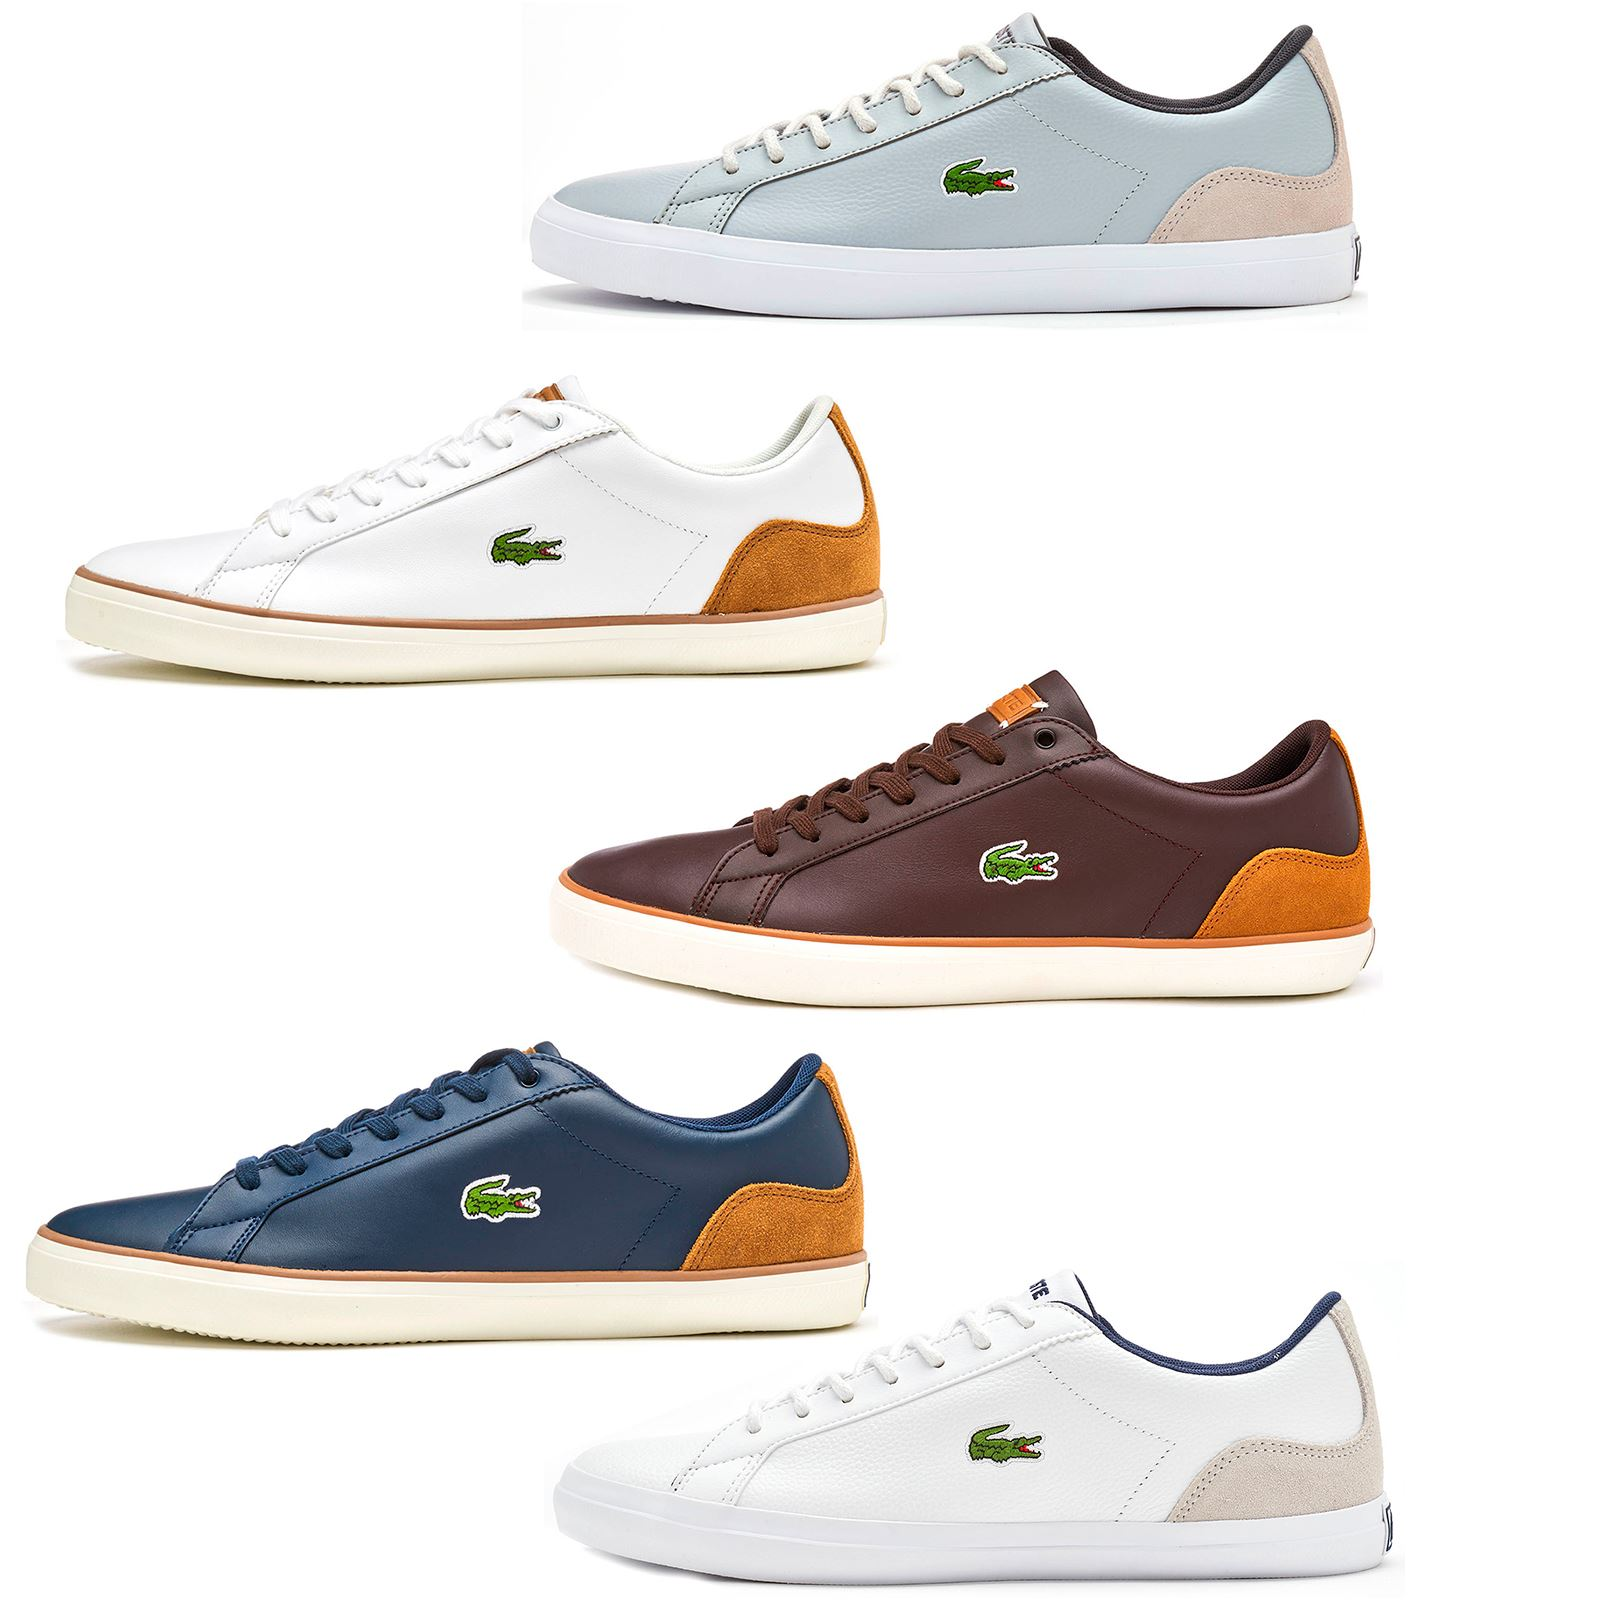 Lacoste Lerond 118 1 CAM Trainers in Navy Blue   White   Brown in All Sizes cc95160c2